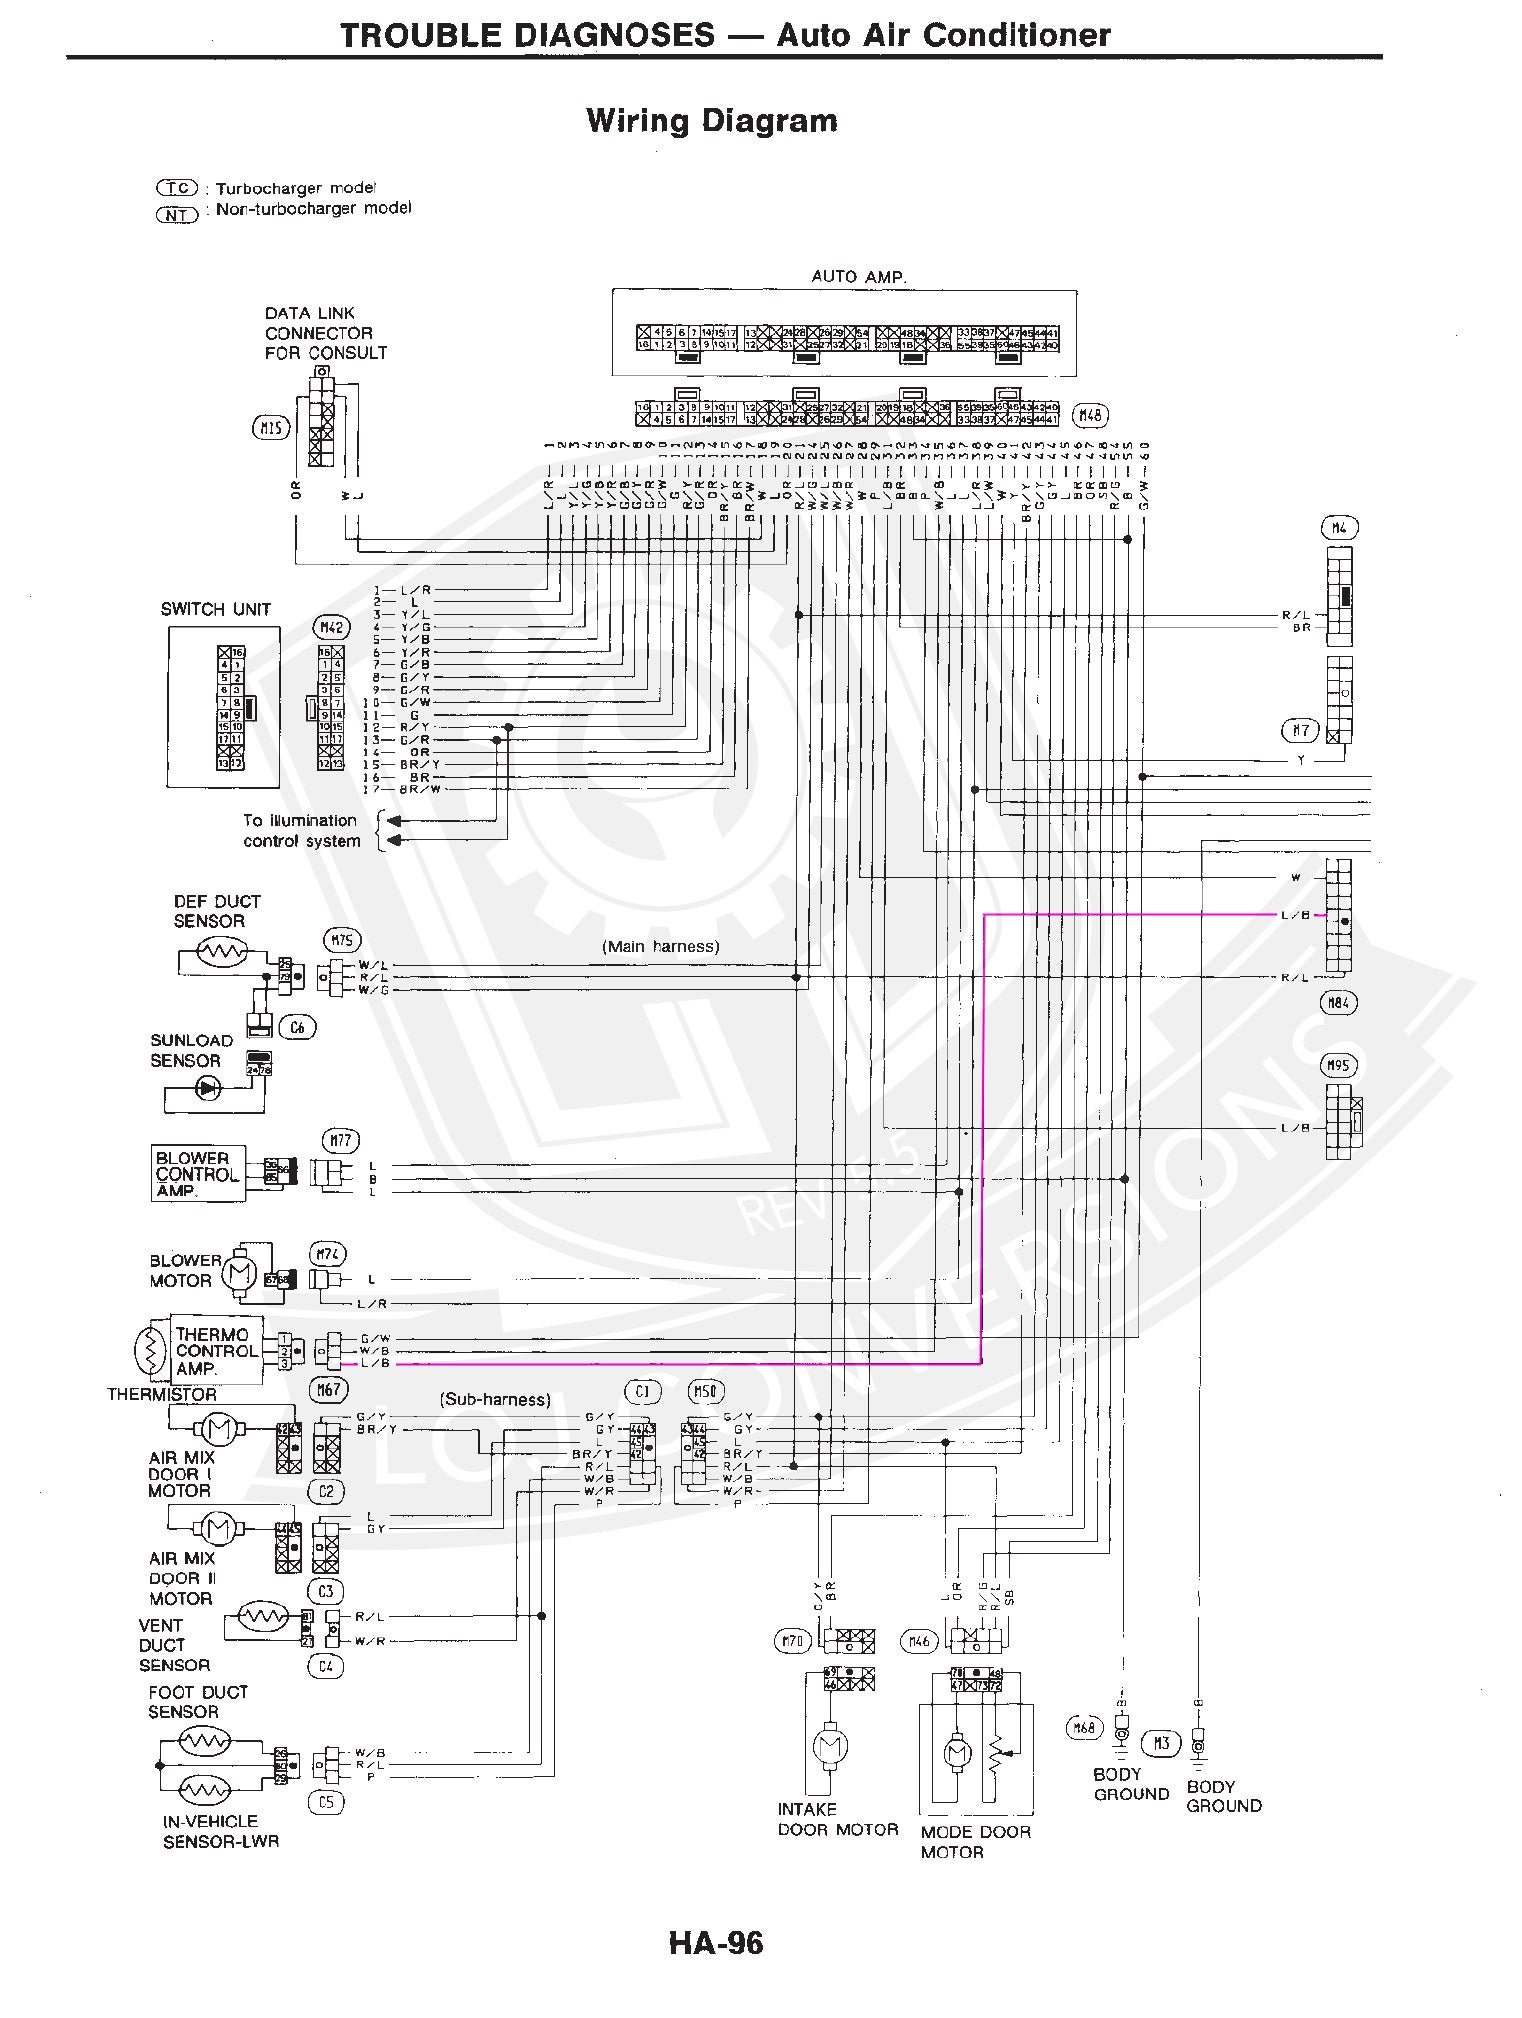 Nissan 300zx Radio Wiring Diagram Libraries 1990 1986 Schematic Simple Diagram86 Engine Library